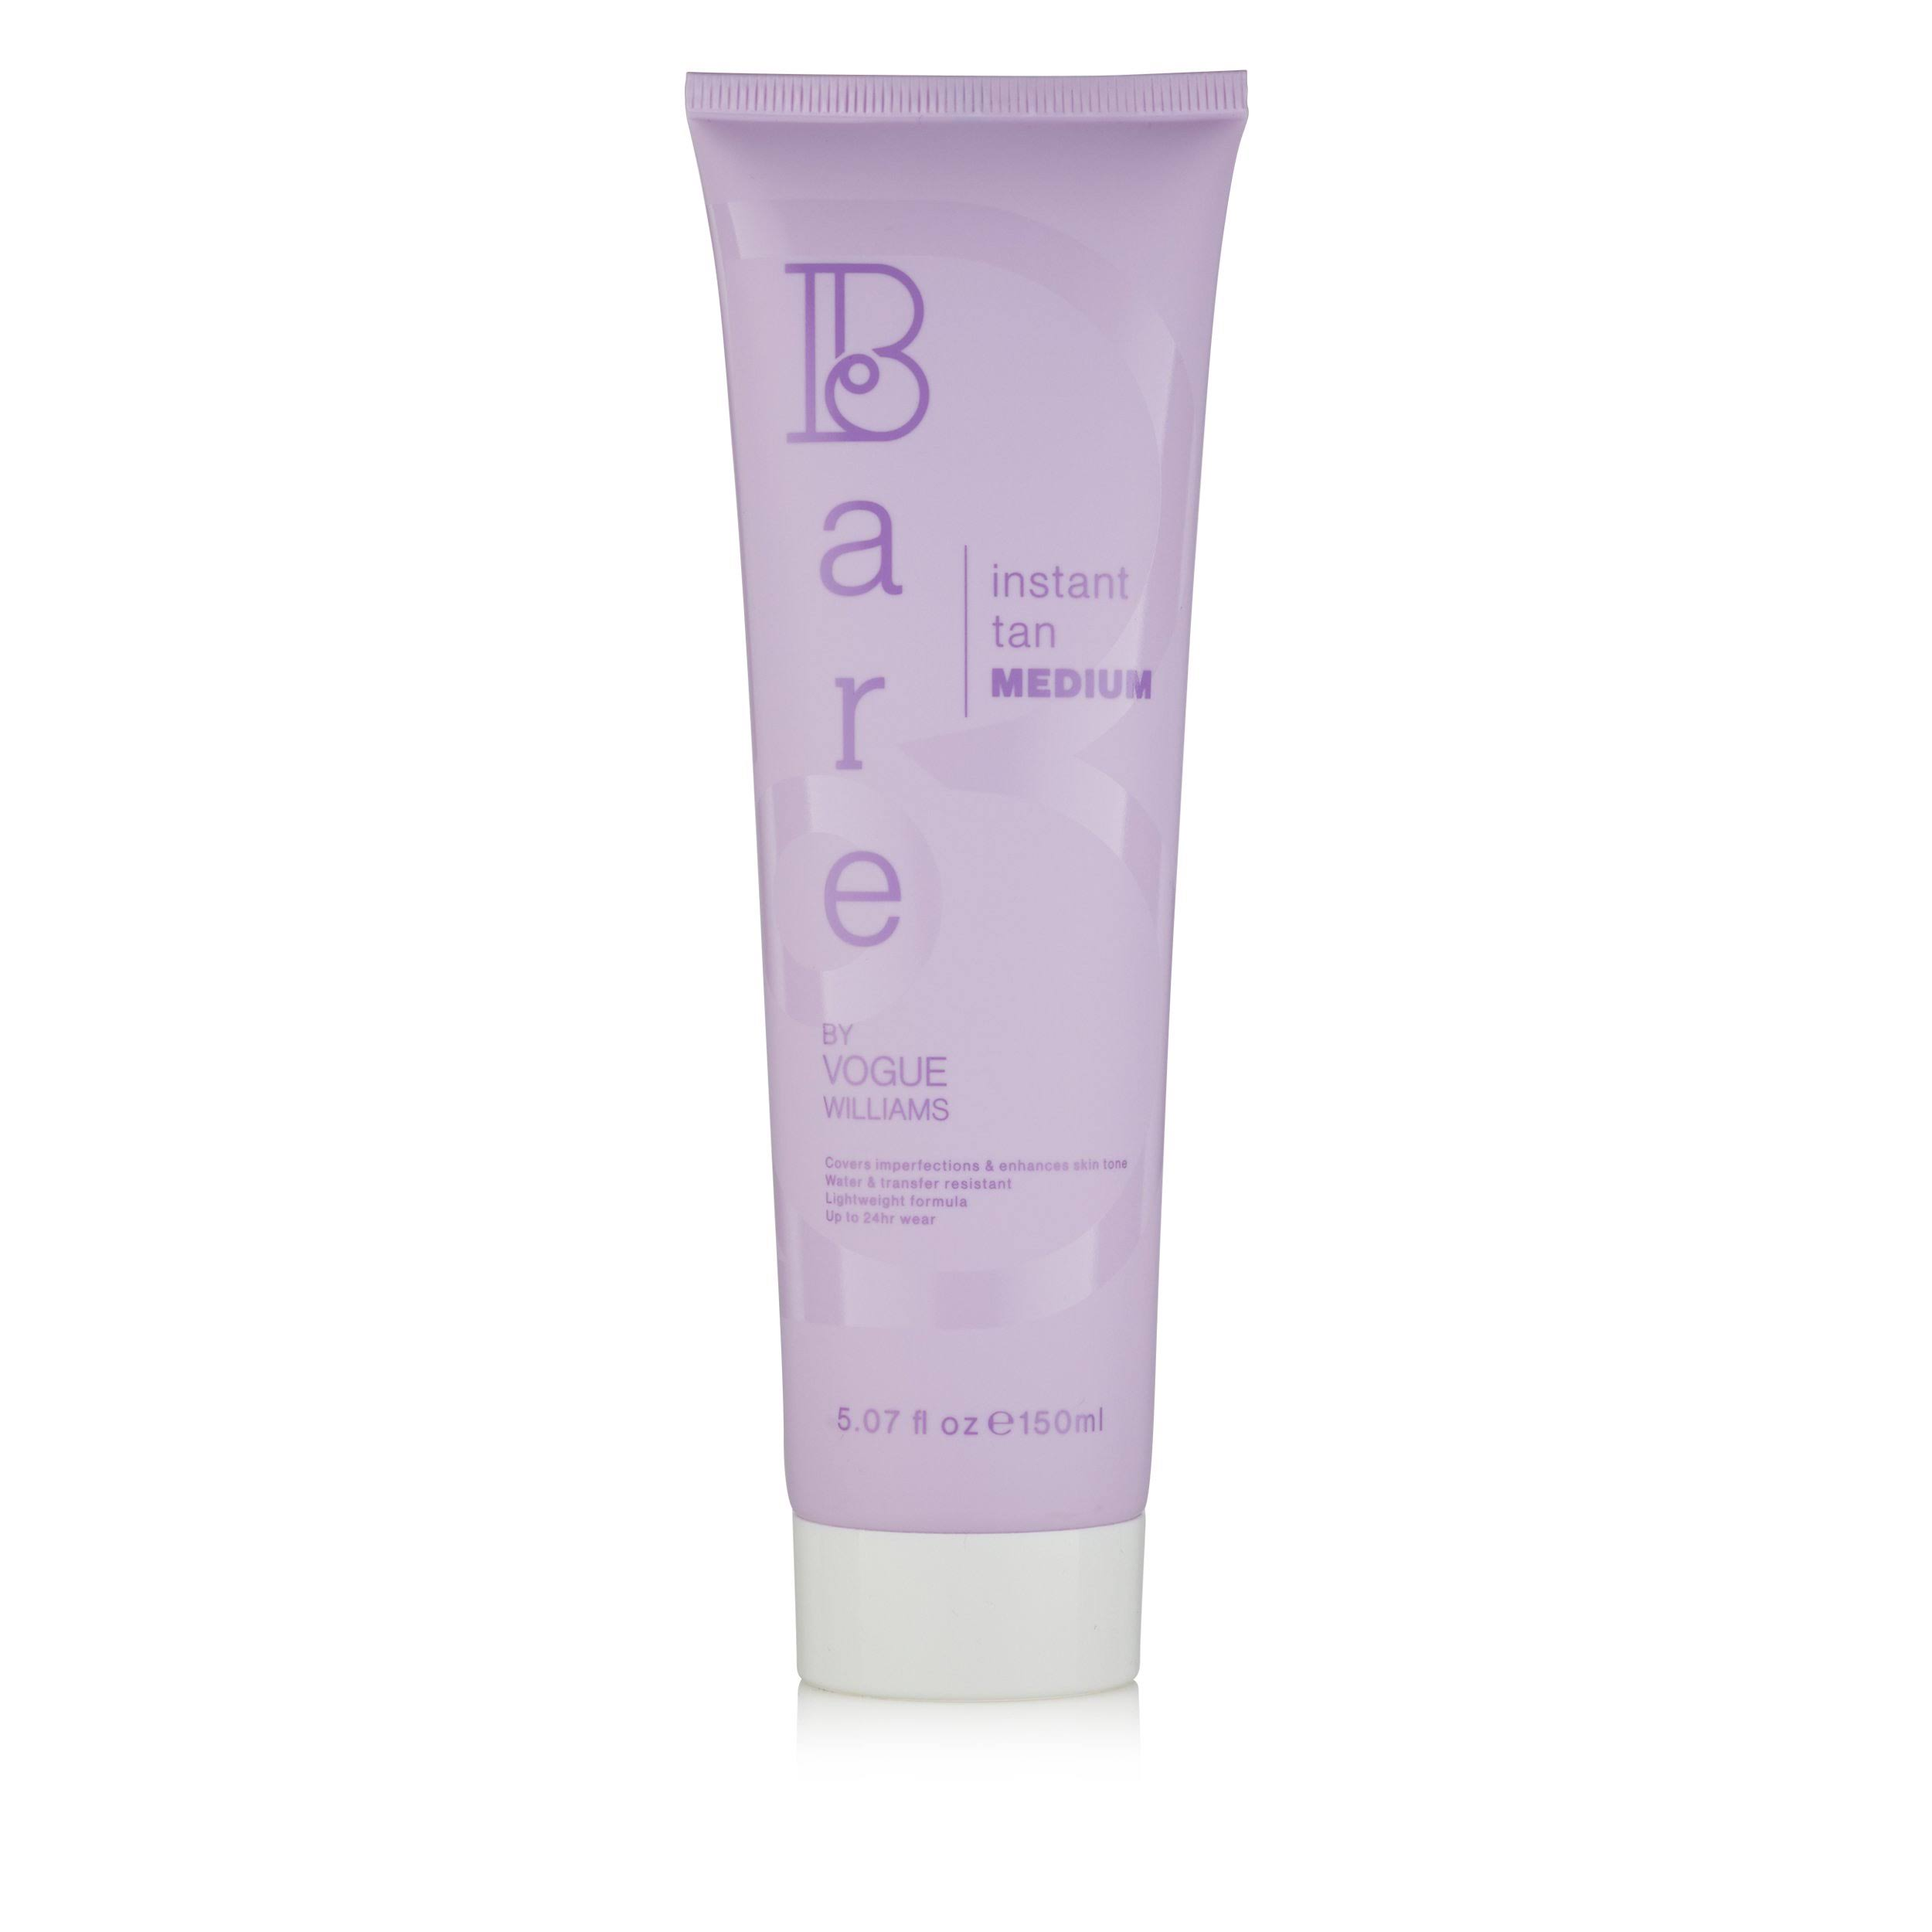 Bare By Vogue Instant Tan - Medium